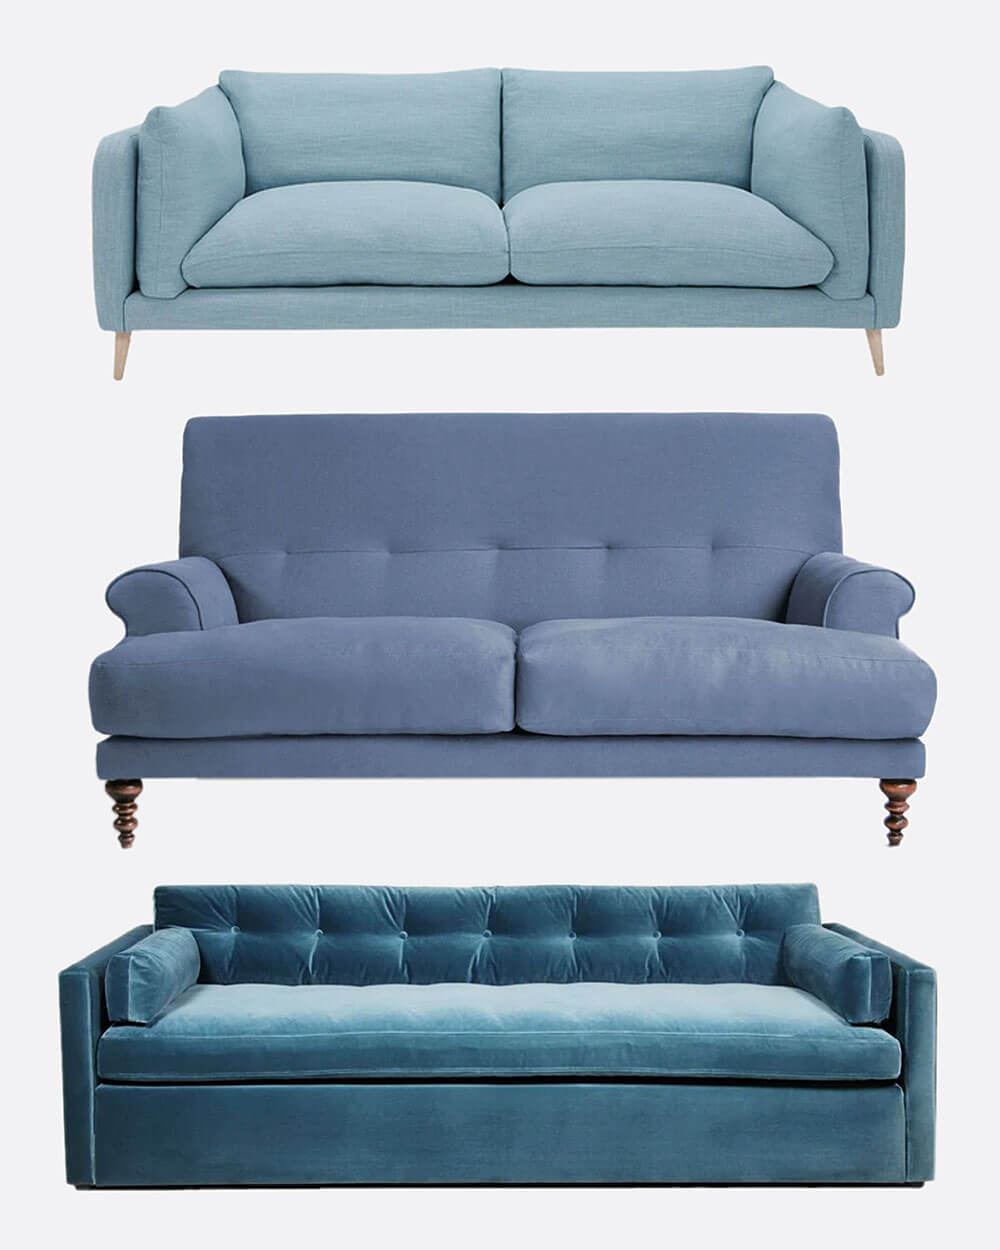 3 Blue Sofa Living Room Ideas Safomasi